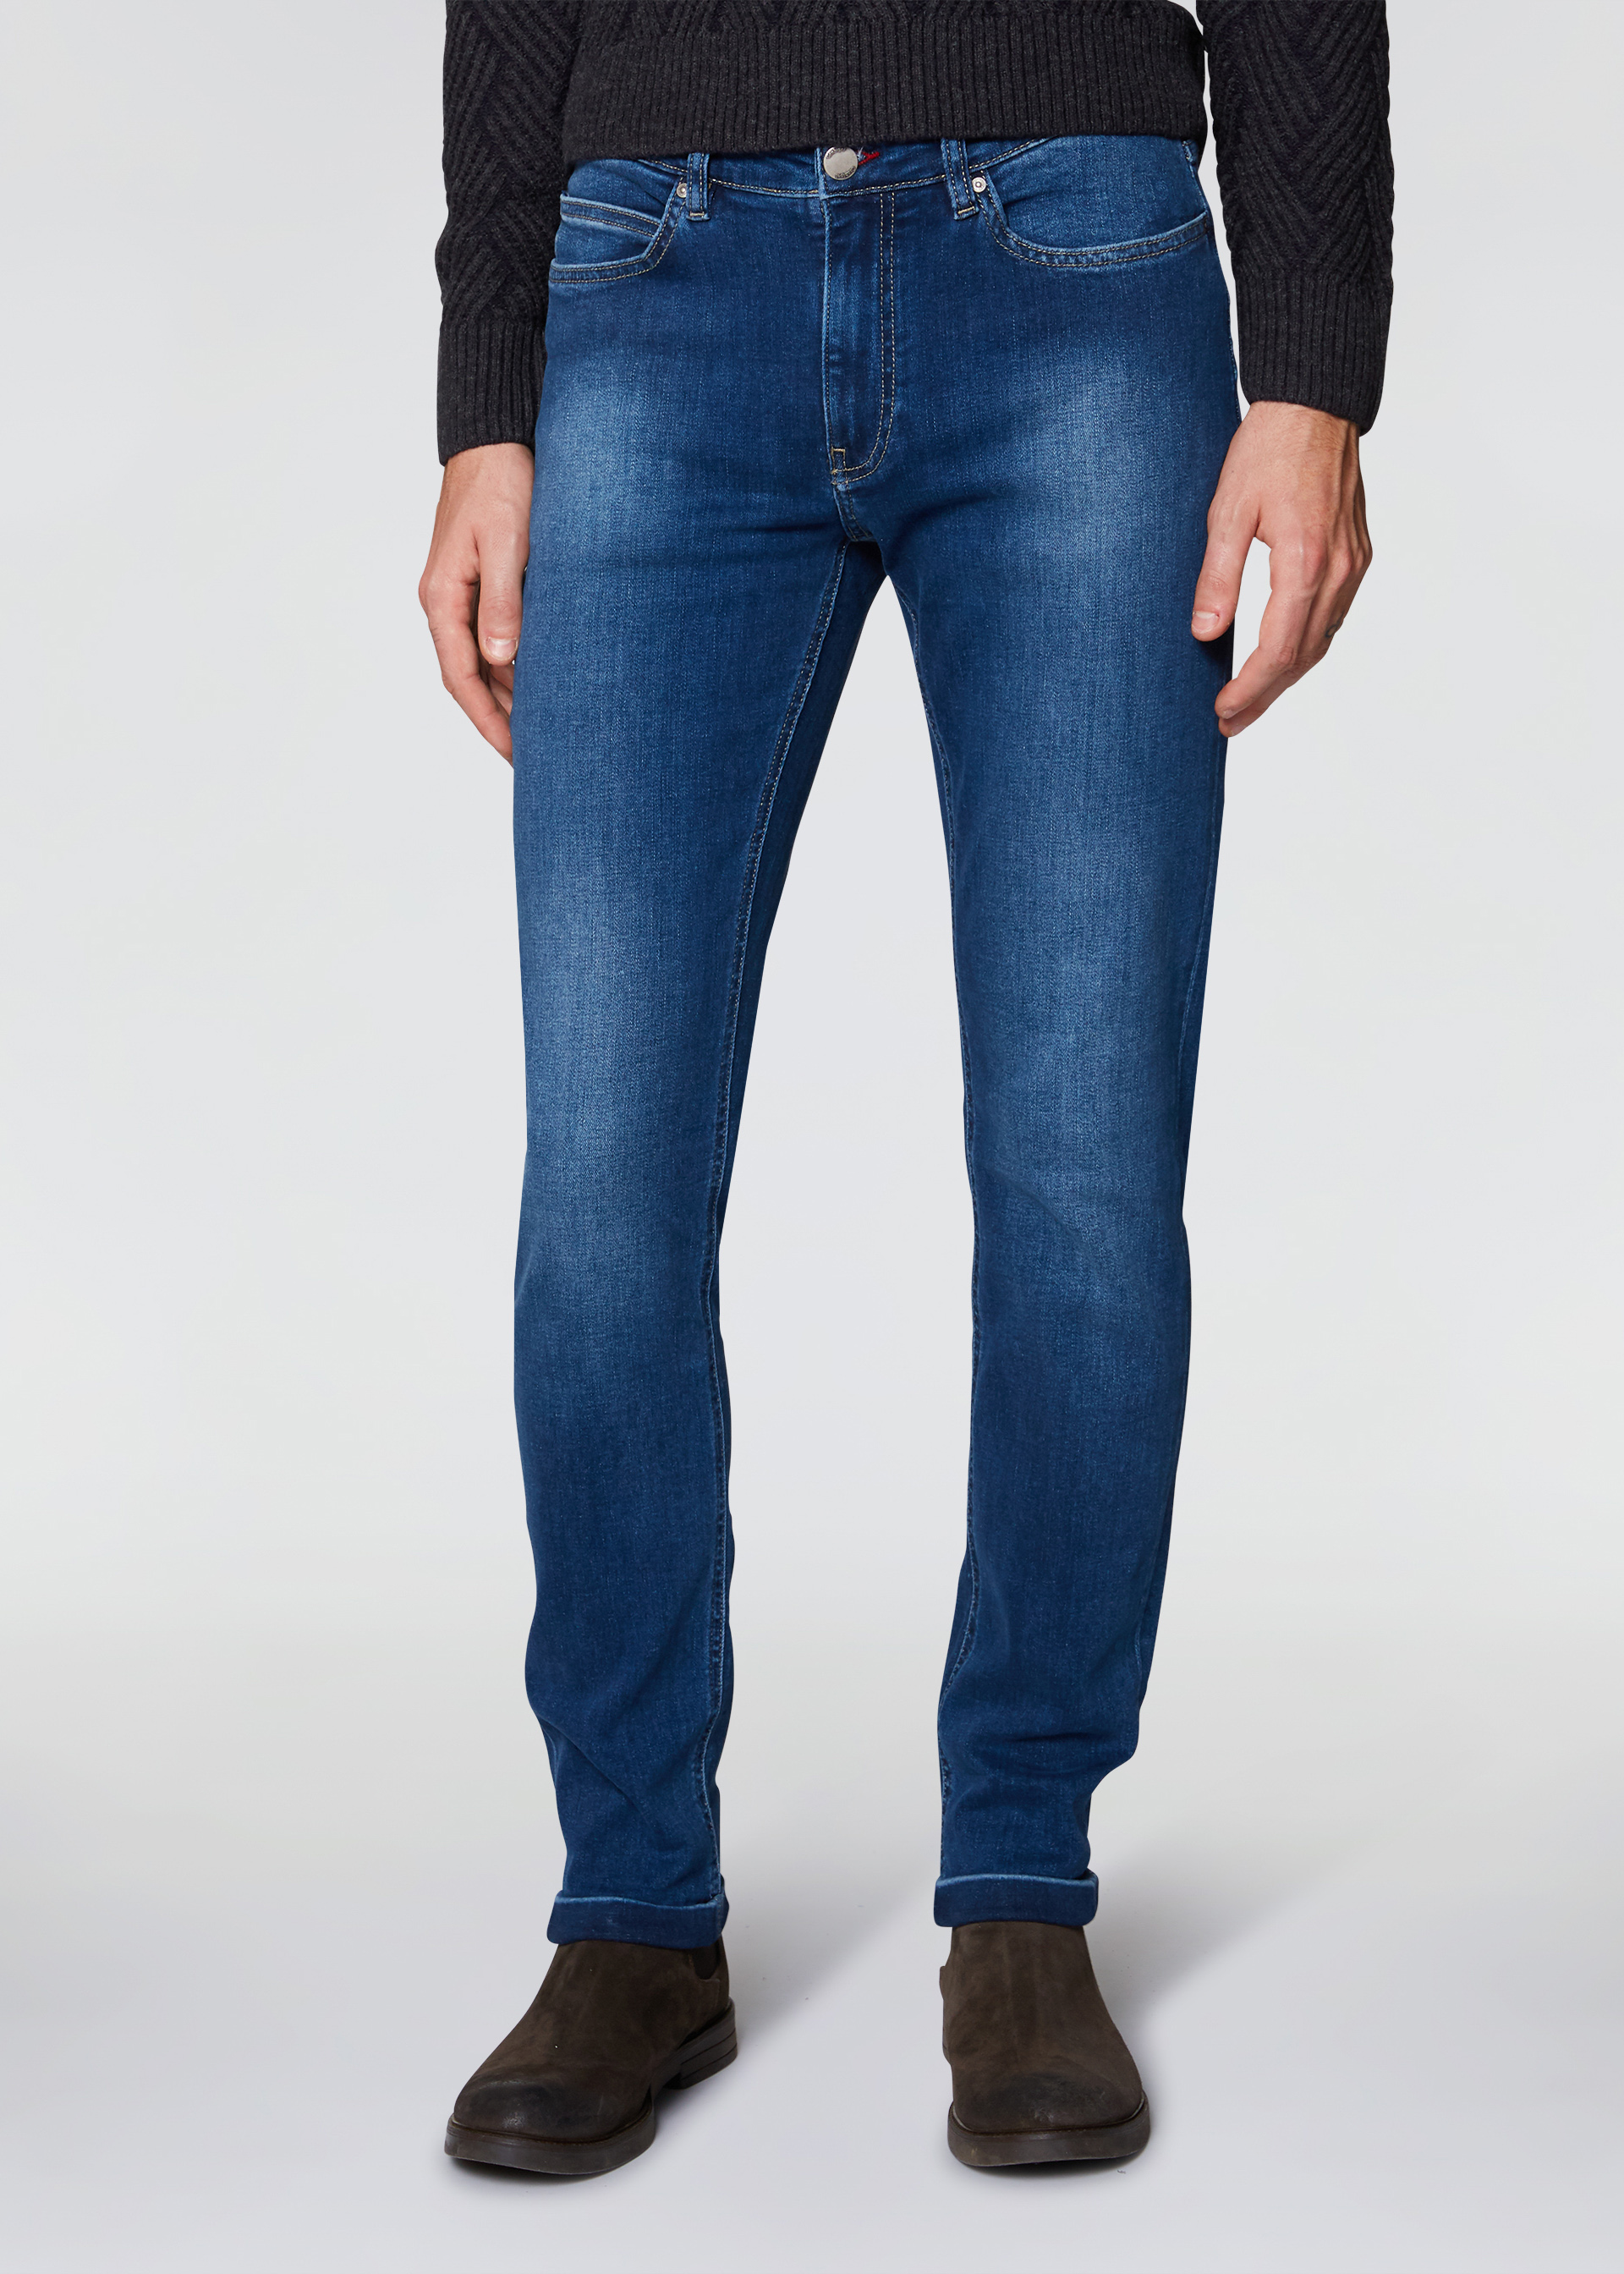 Jeans bottoni colorati